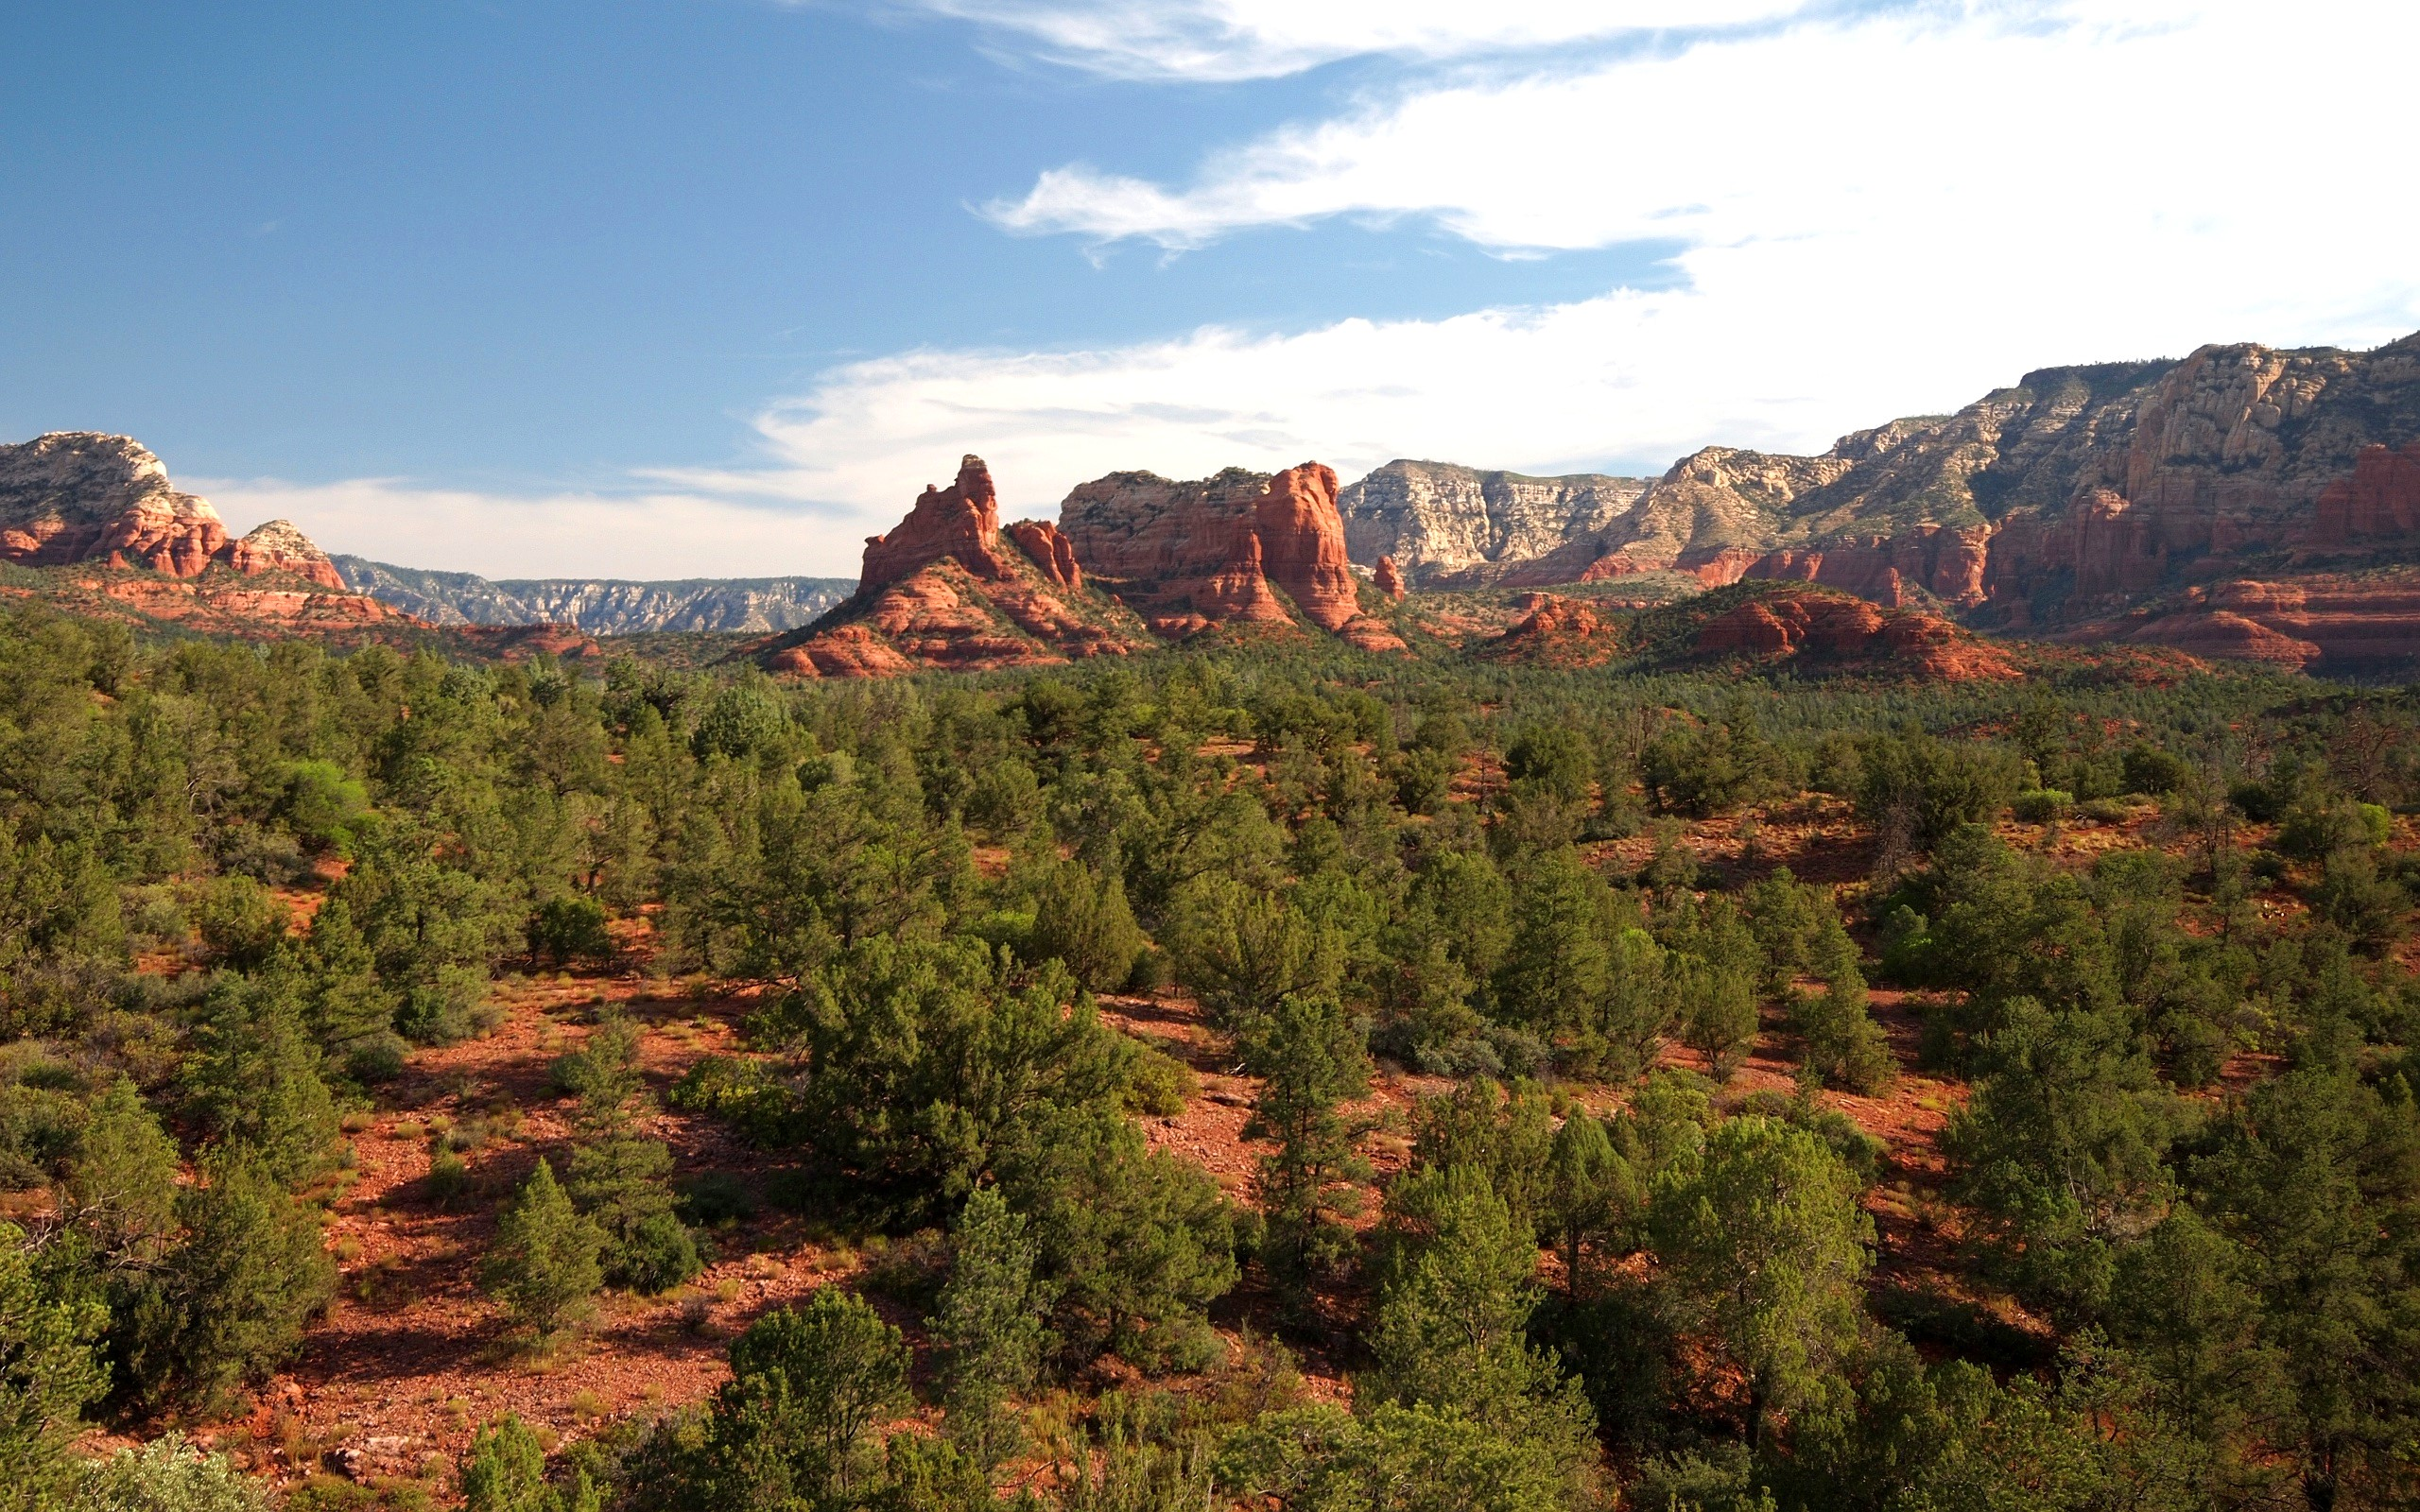 File:Sedona Arizona-27527-5.jpg - Wikimedia Commons